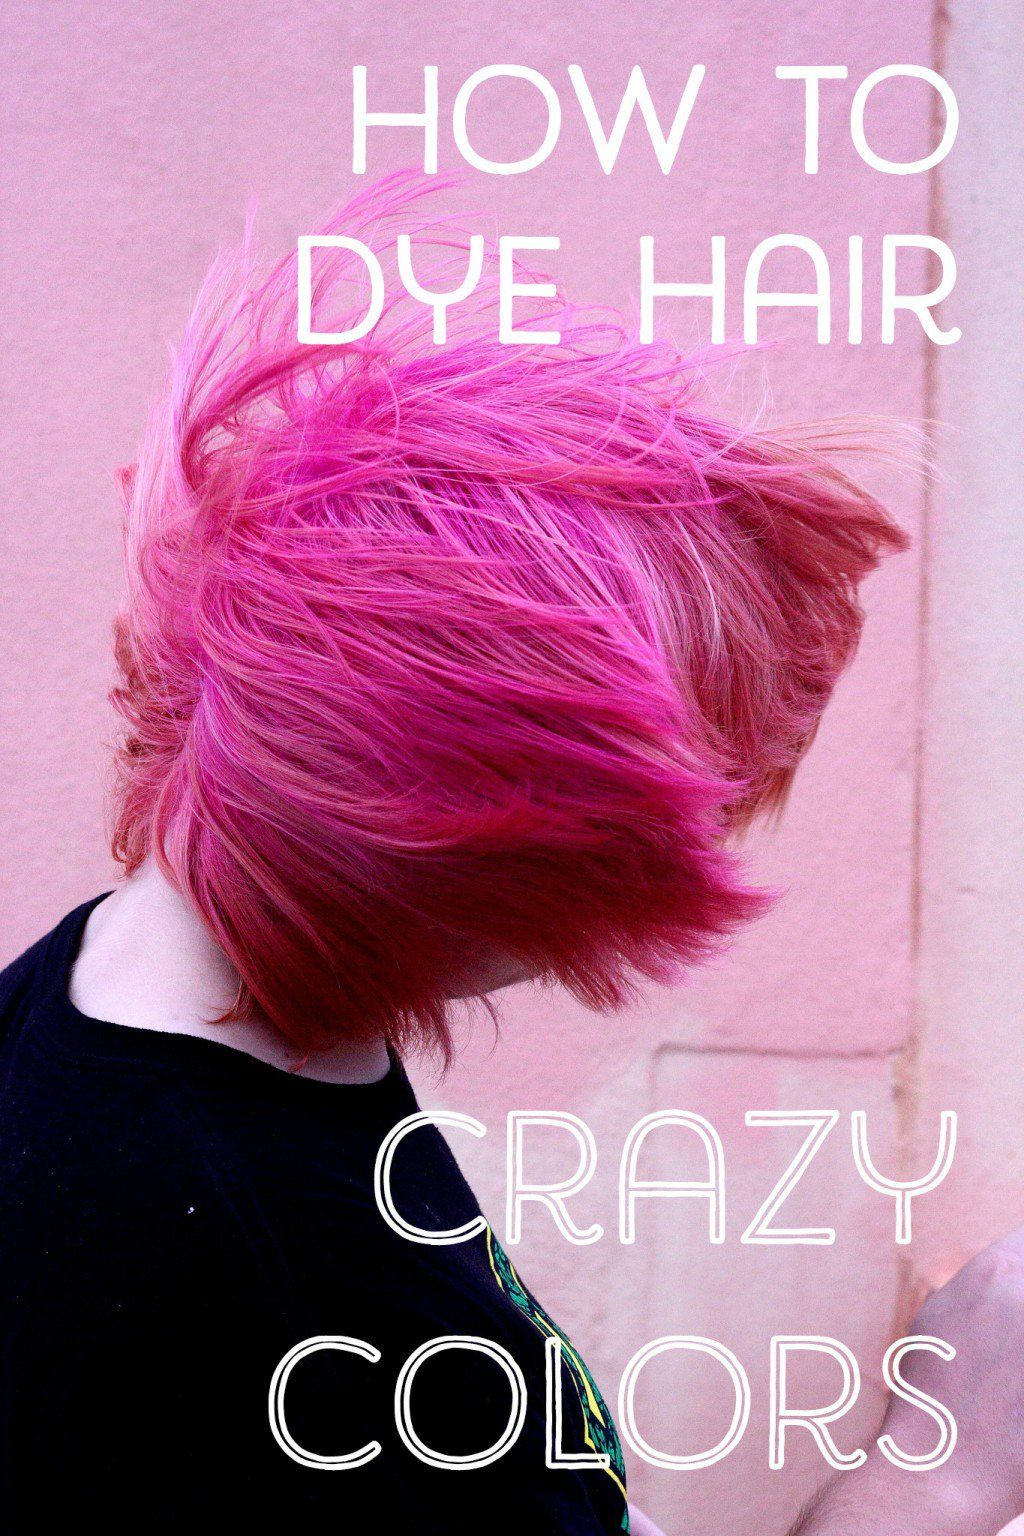 How To Dye Hair Crazy Colors With Images